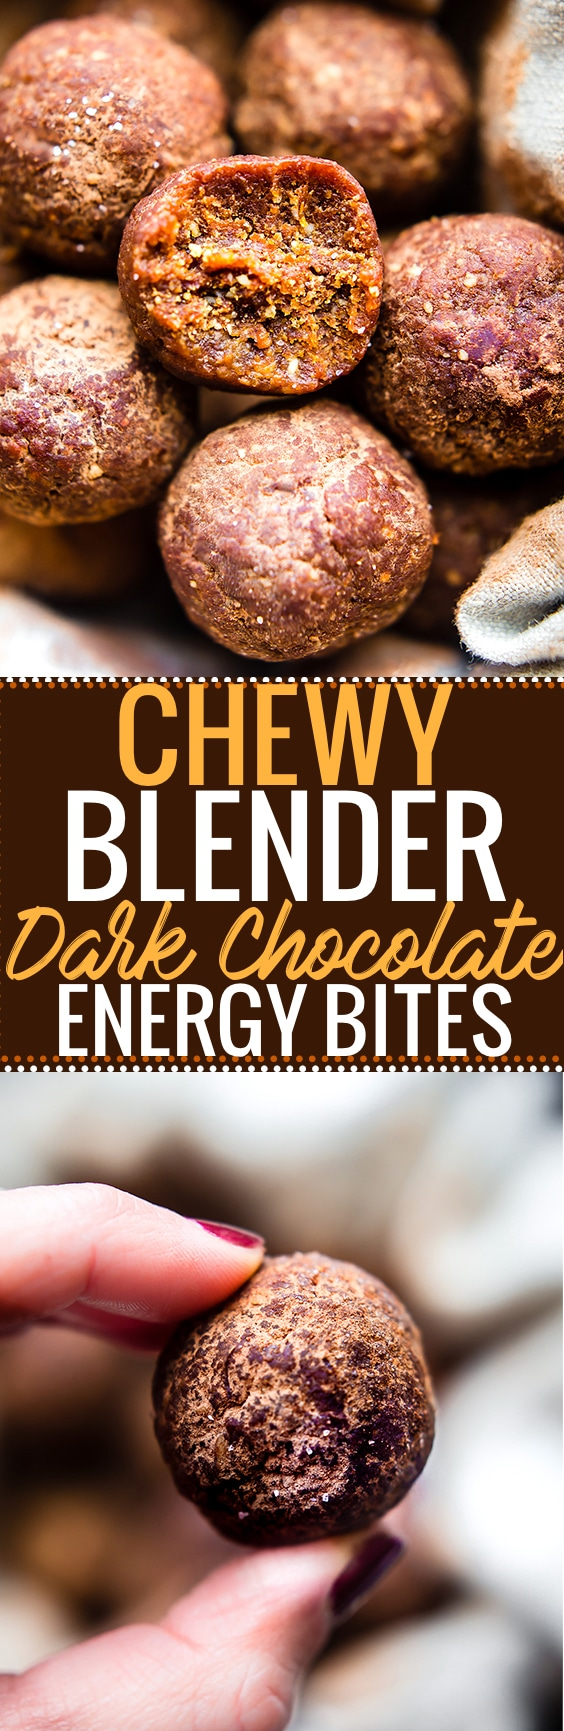 Chocolate Chewy Energy Bites made right in your blender! These dark chocolate energy bites are just 5 ingredients, sweet, chewy, and absolutely delicious! Paleo, Vegan, and Whole 30 friendly! An energizing chewy snack that perfect for anytime of day! @vitamix @cottercrunch www.cottercrunch.com